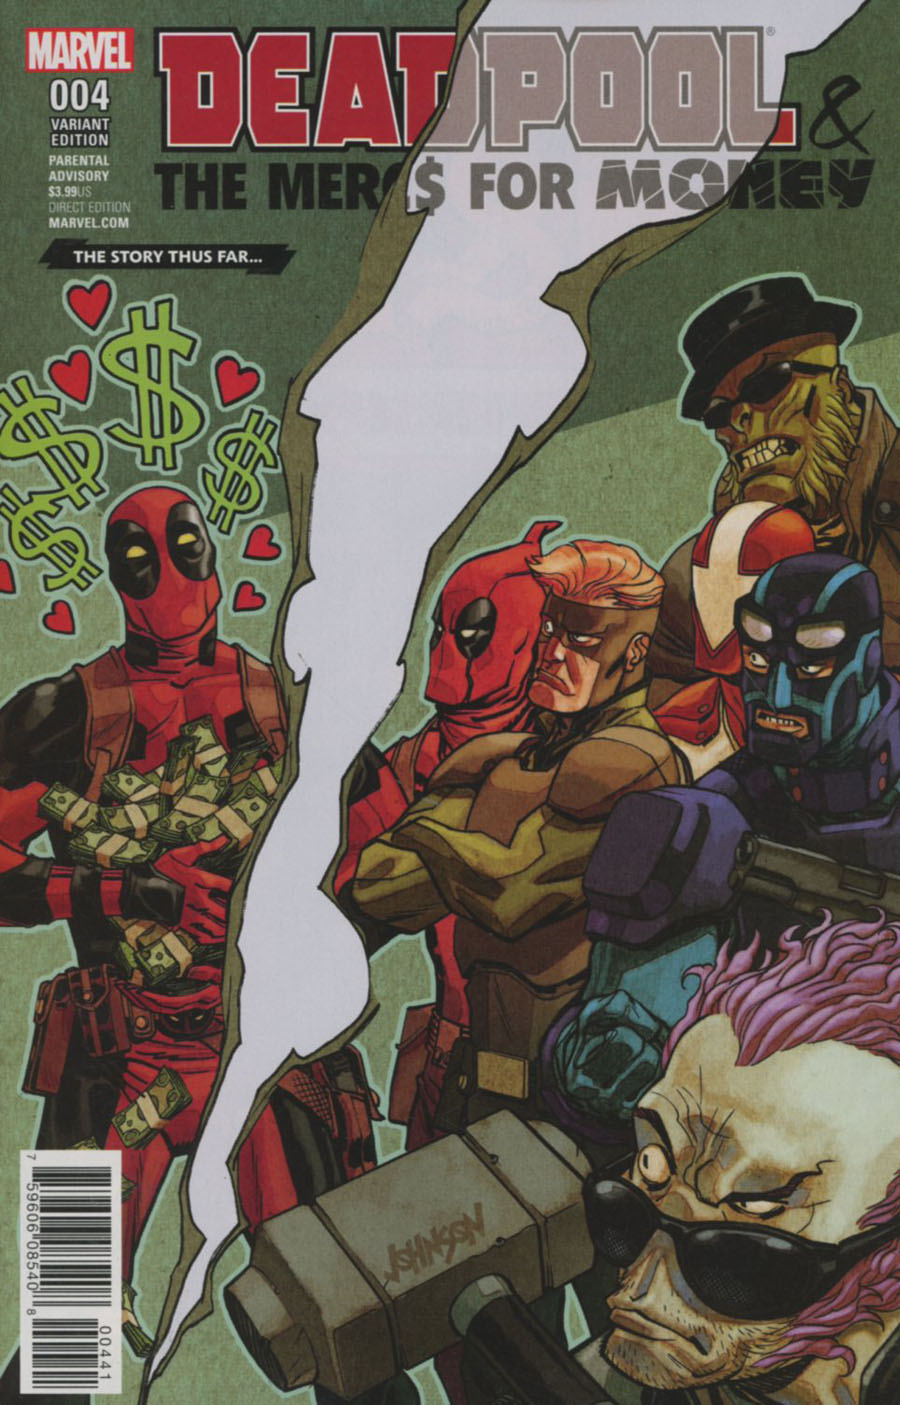 Deadpool And The Mercs For Money Vol 2 #4 Cover D Variant Story Thus Far Cover (Marvel Now Tie-In)